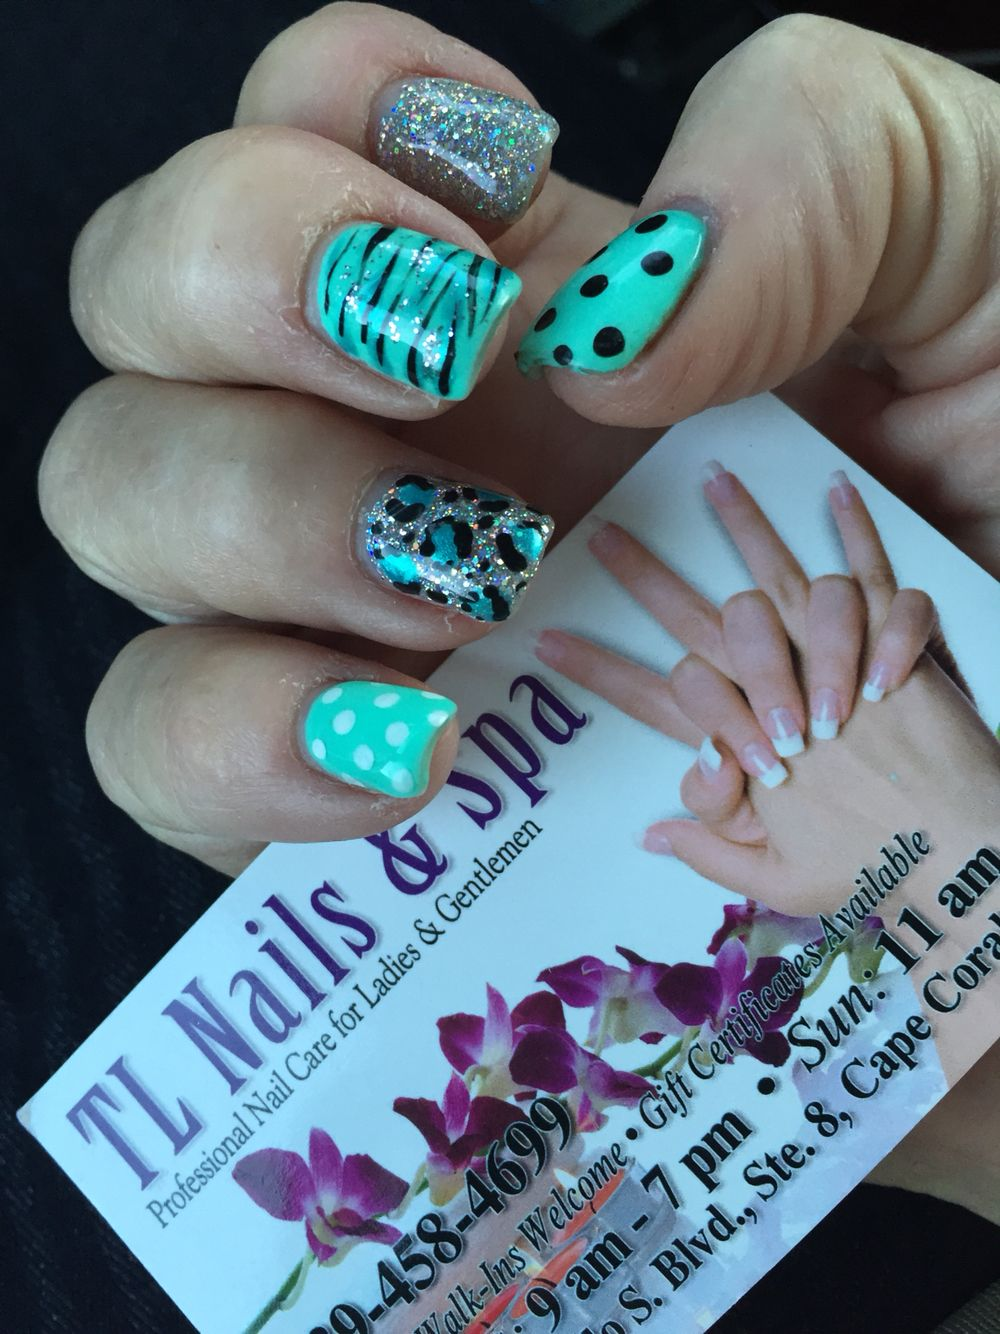 Teal and silver glitter by lien at TL nails